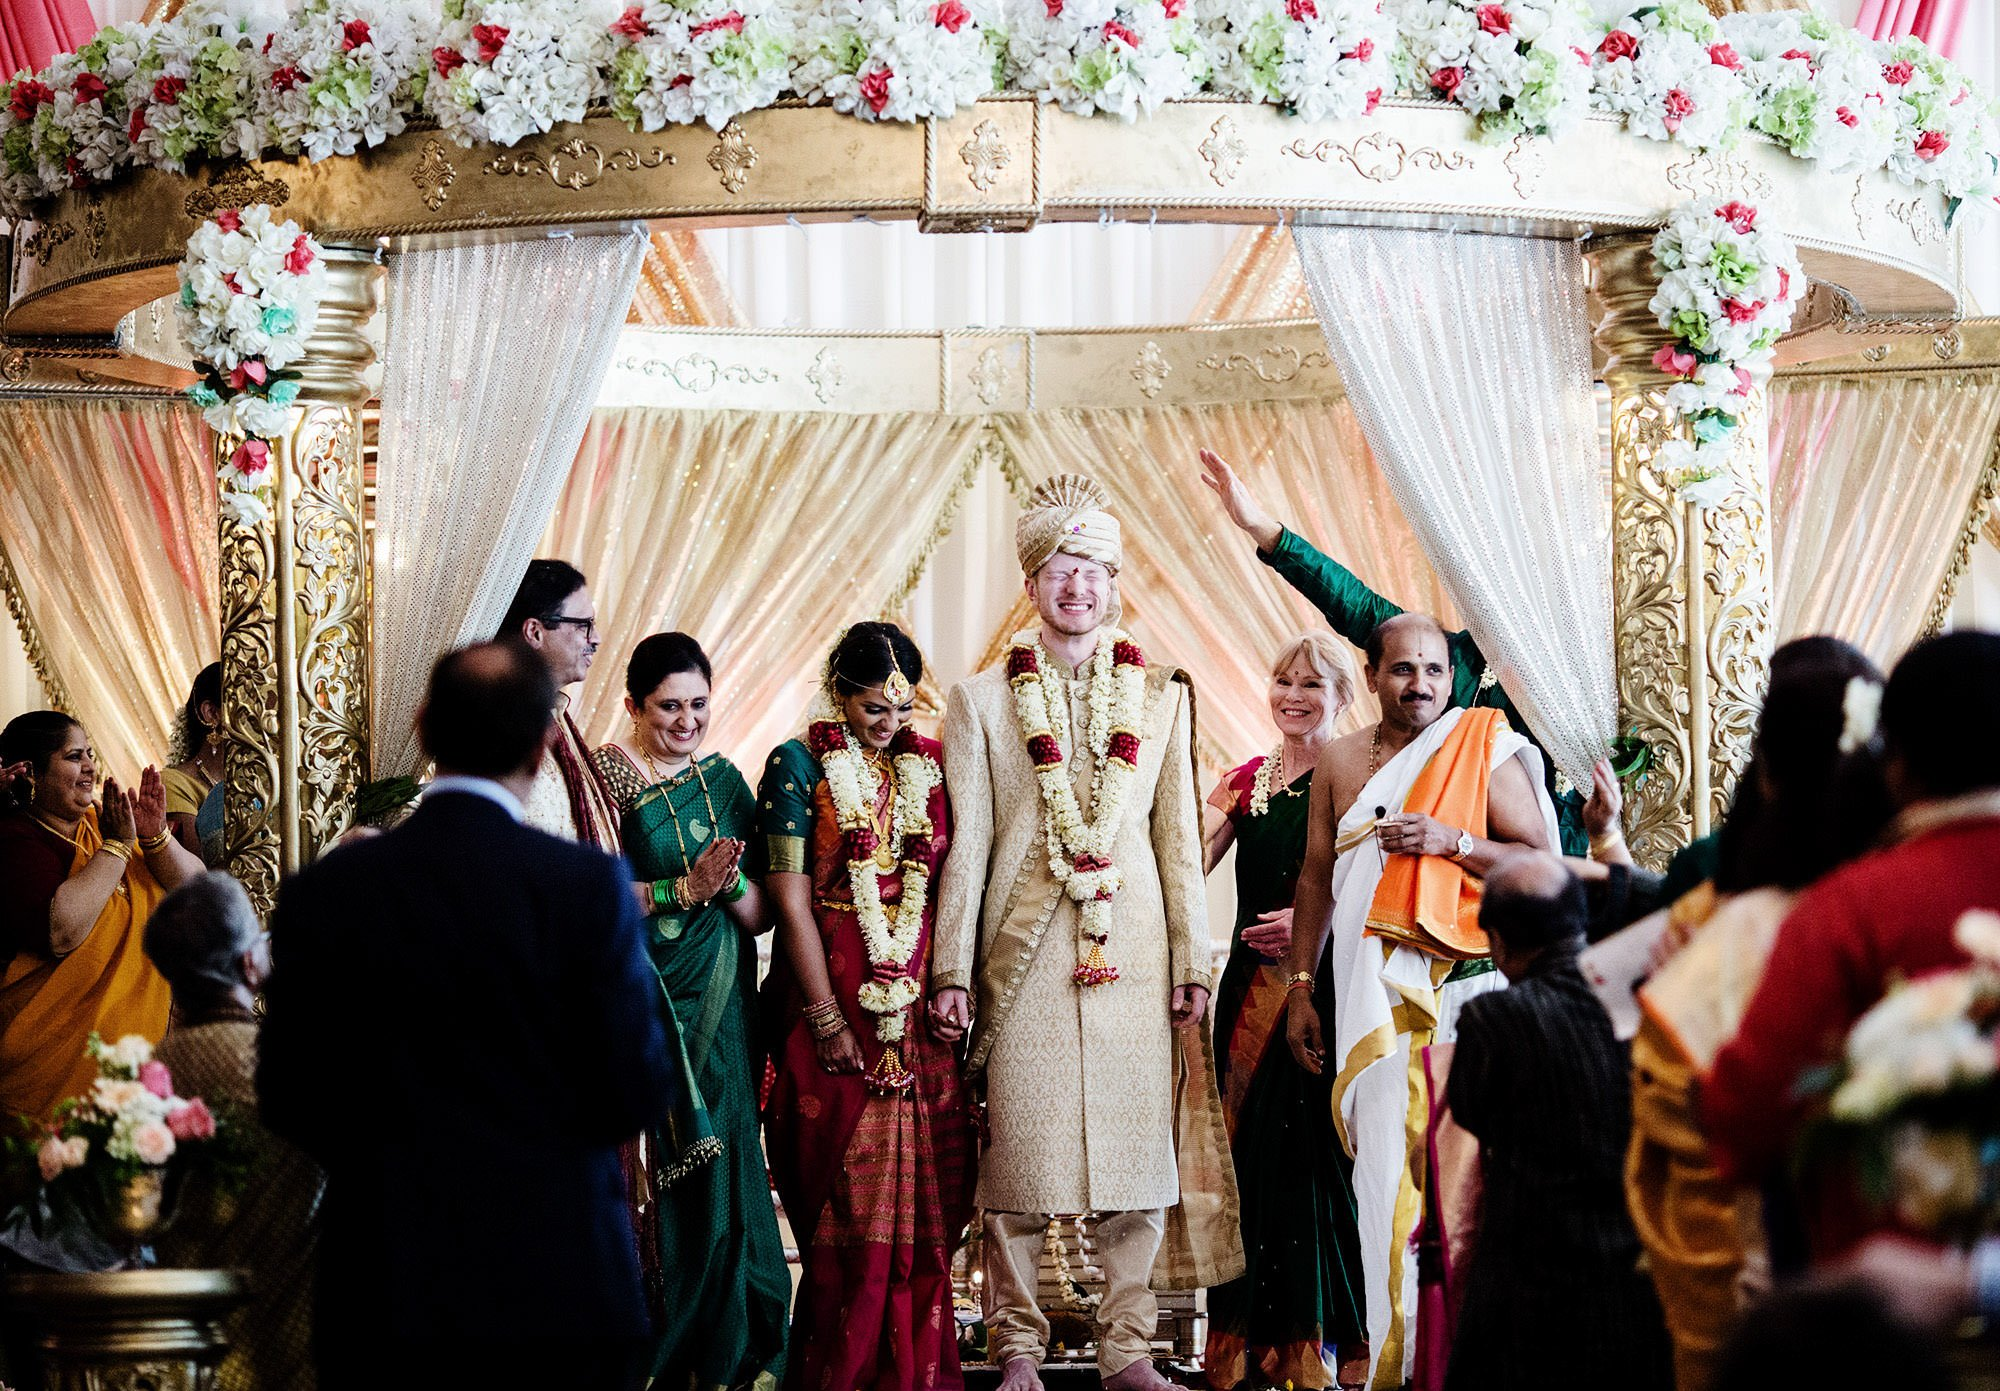 Foxchase Manor Wedding in Manassas, VA  I  Bride and Groom, Hindu Ceremony